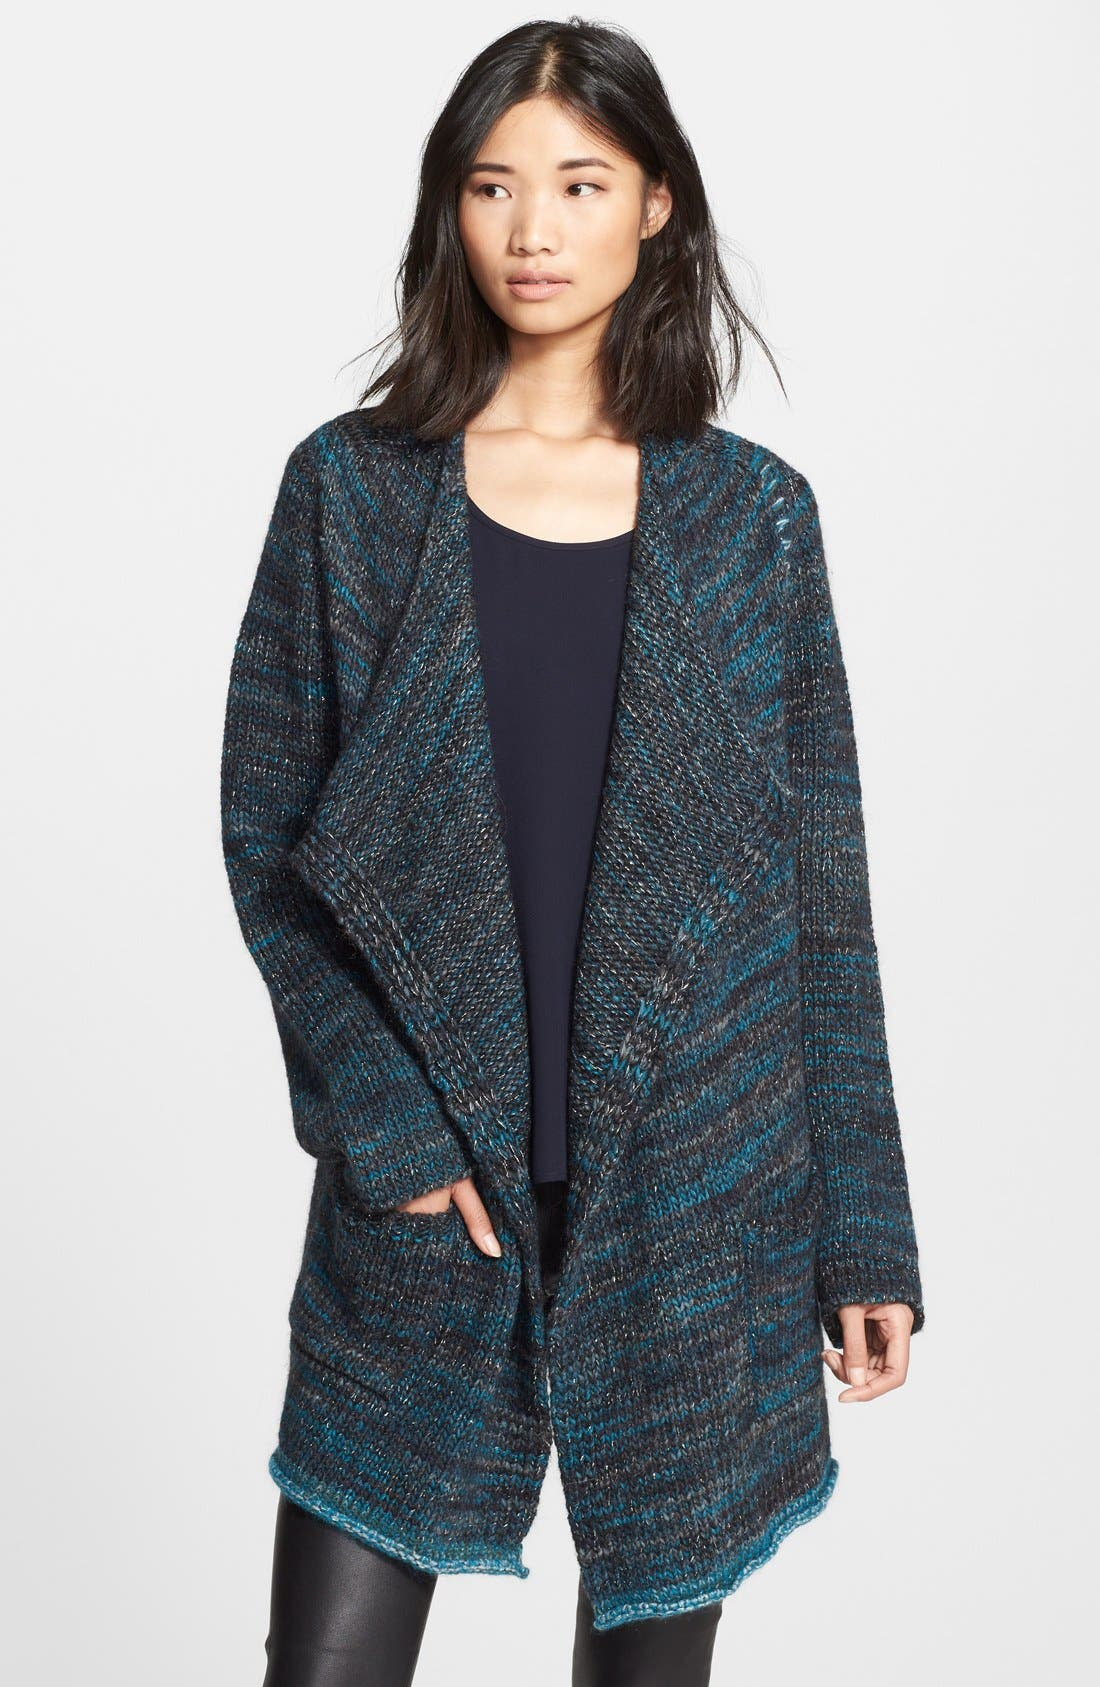 Main Image - Zadig & Voltaire 'Daphnee' Drape Wool Blend Cardigan